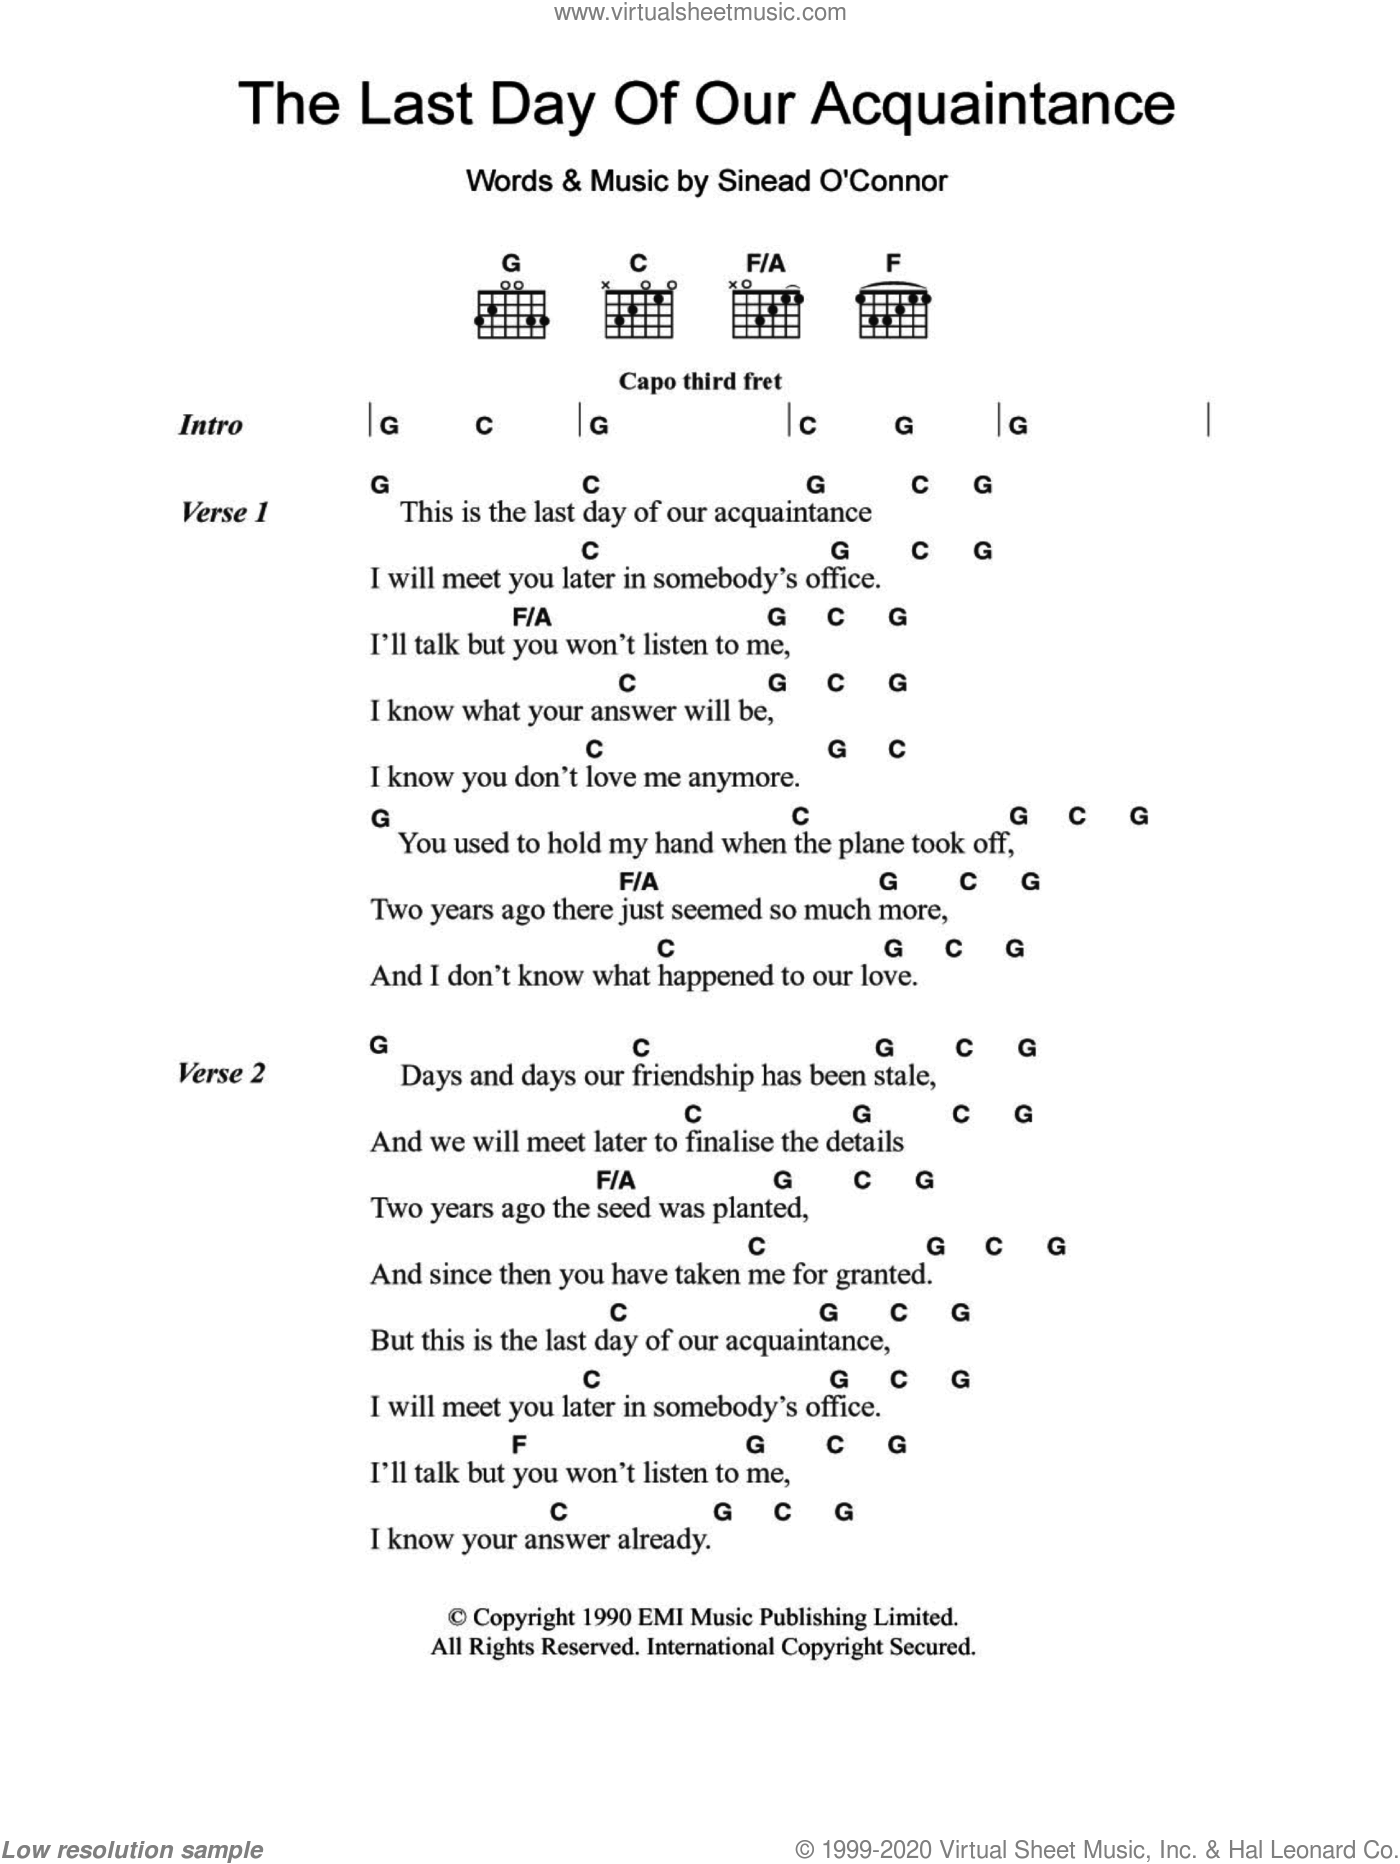 The Last Day Of Our Acquaintance sheet music for guitar (chords) by Sinead O'Connor